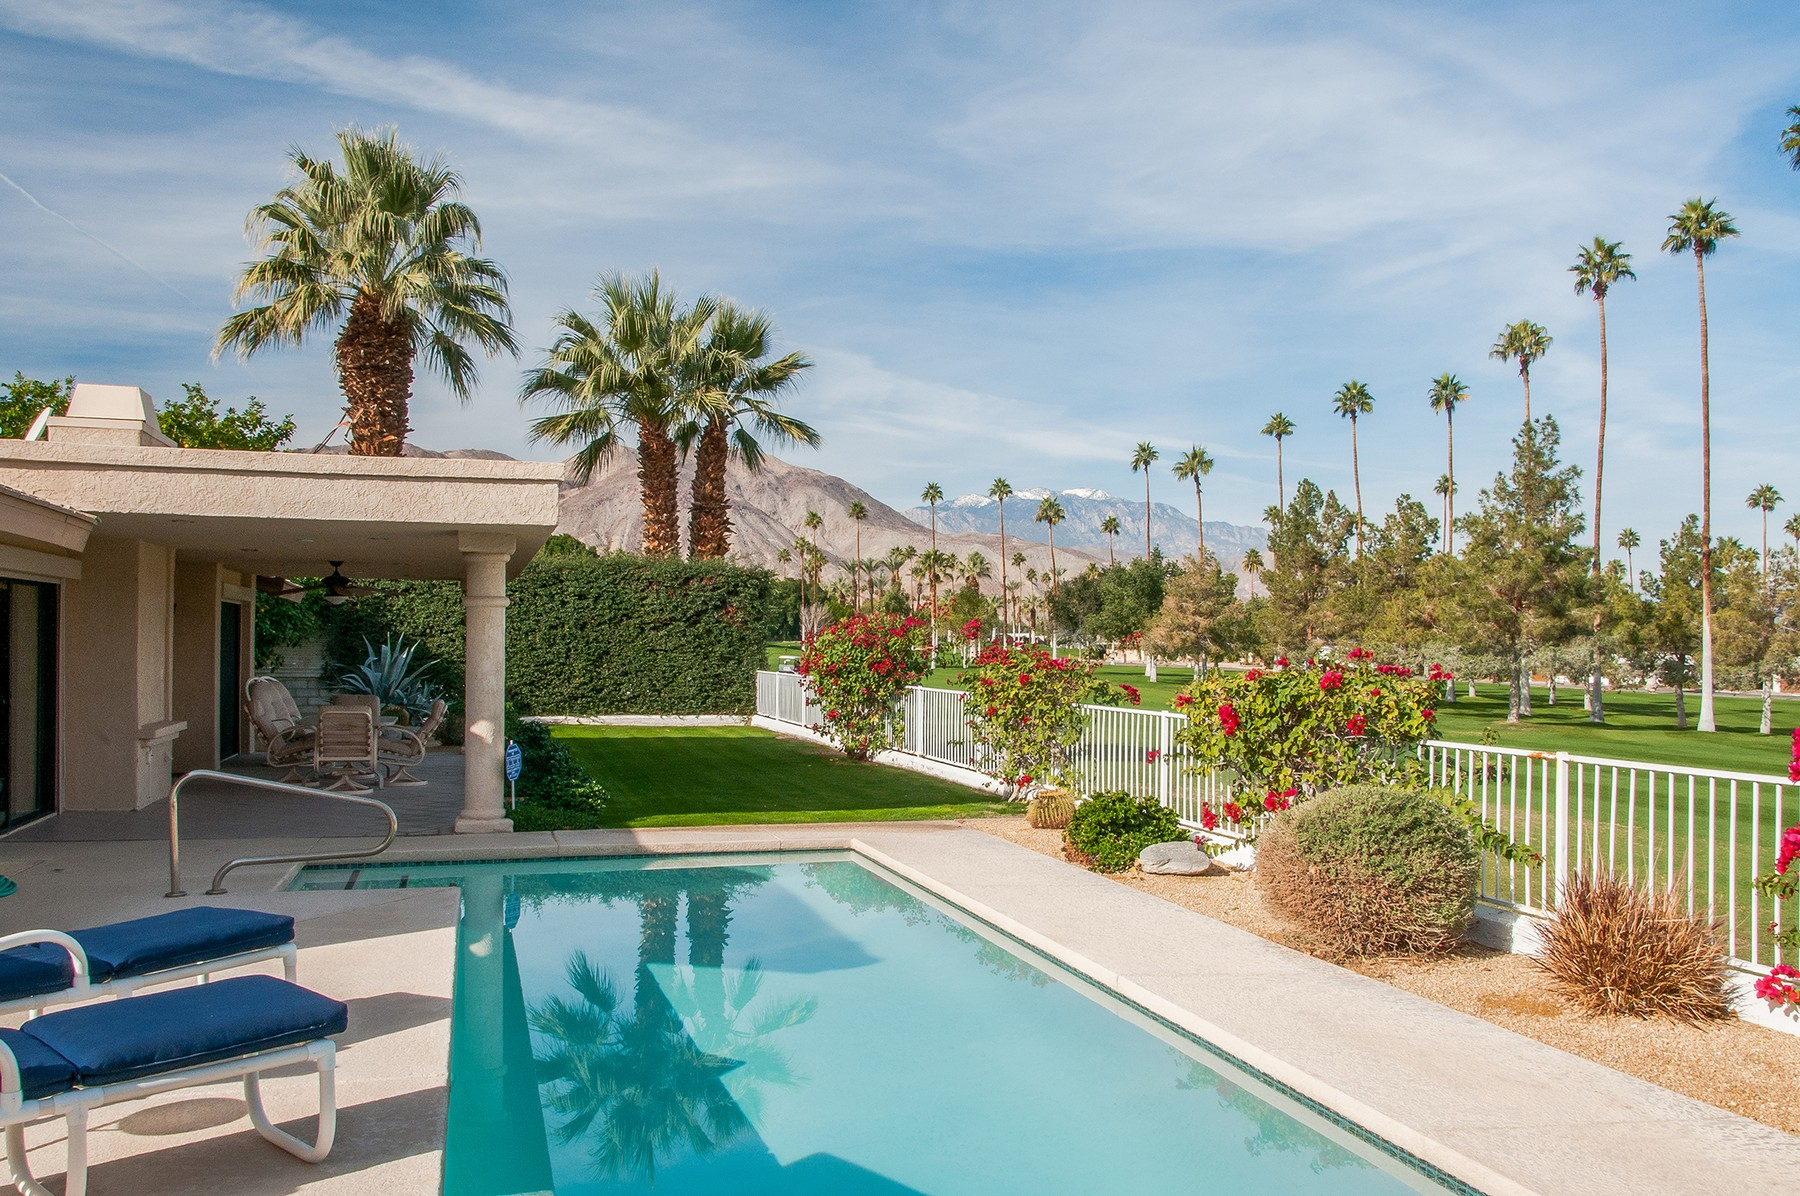 Single Family Home for Sale at 73900 Grapevine Street Palm Desert, California, 92260 United States